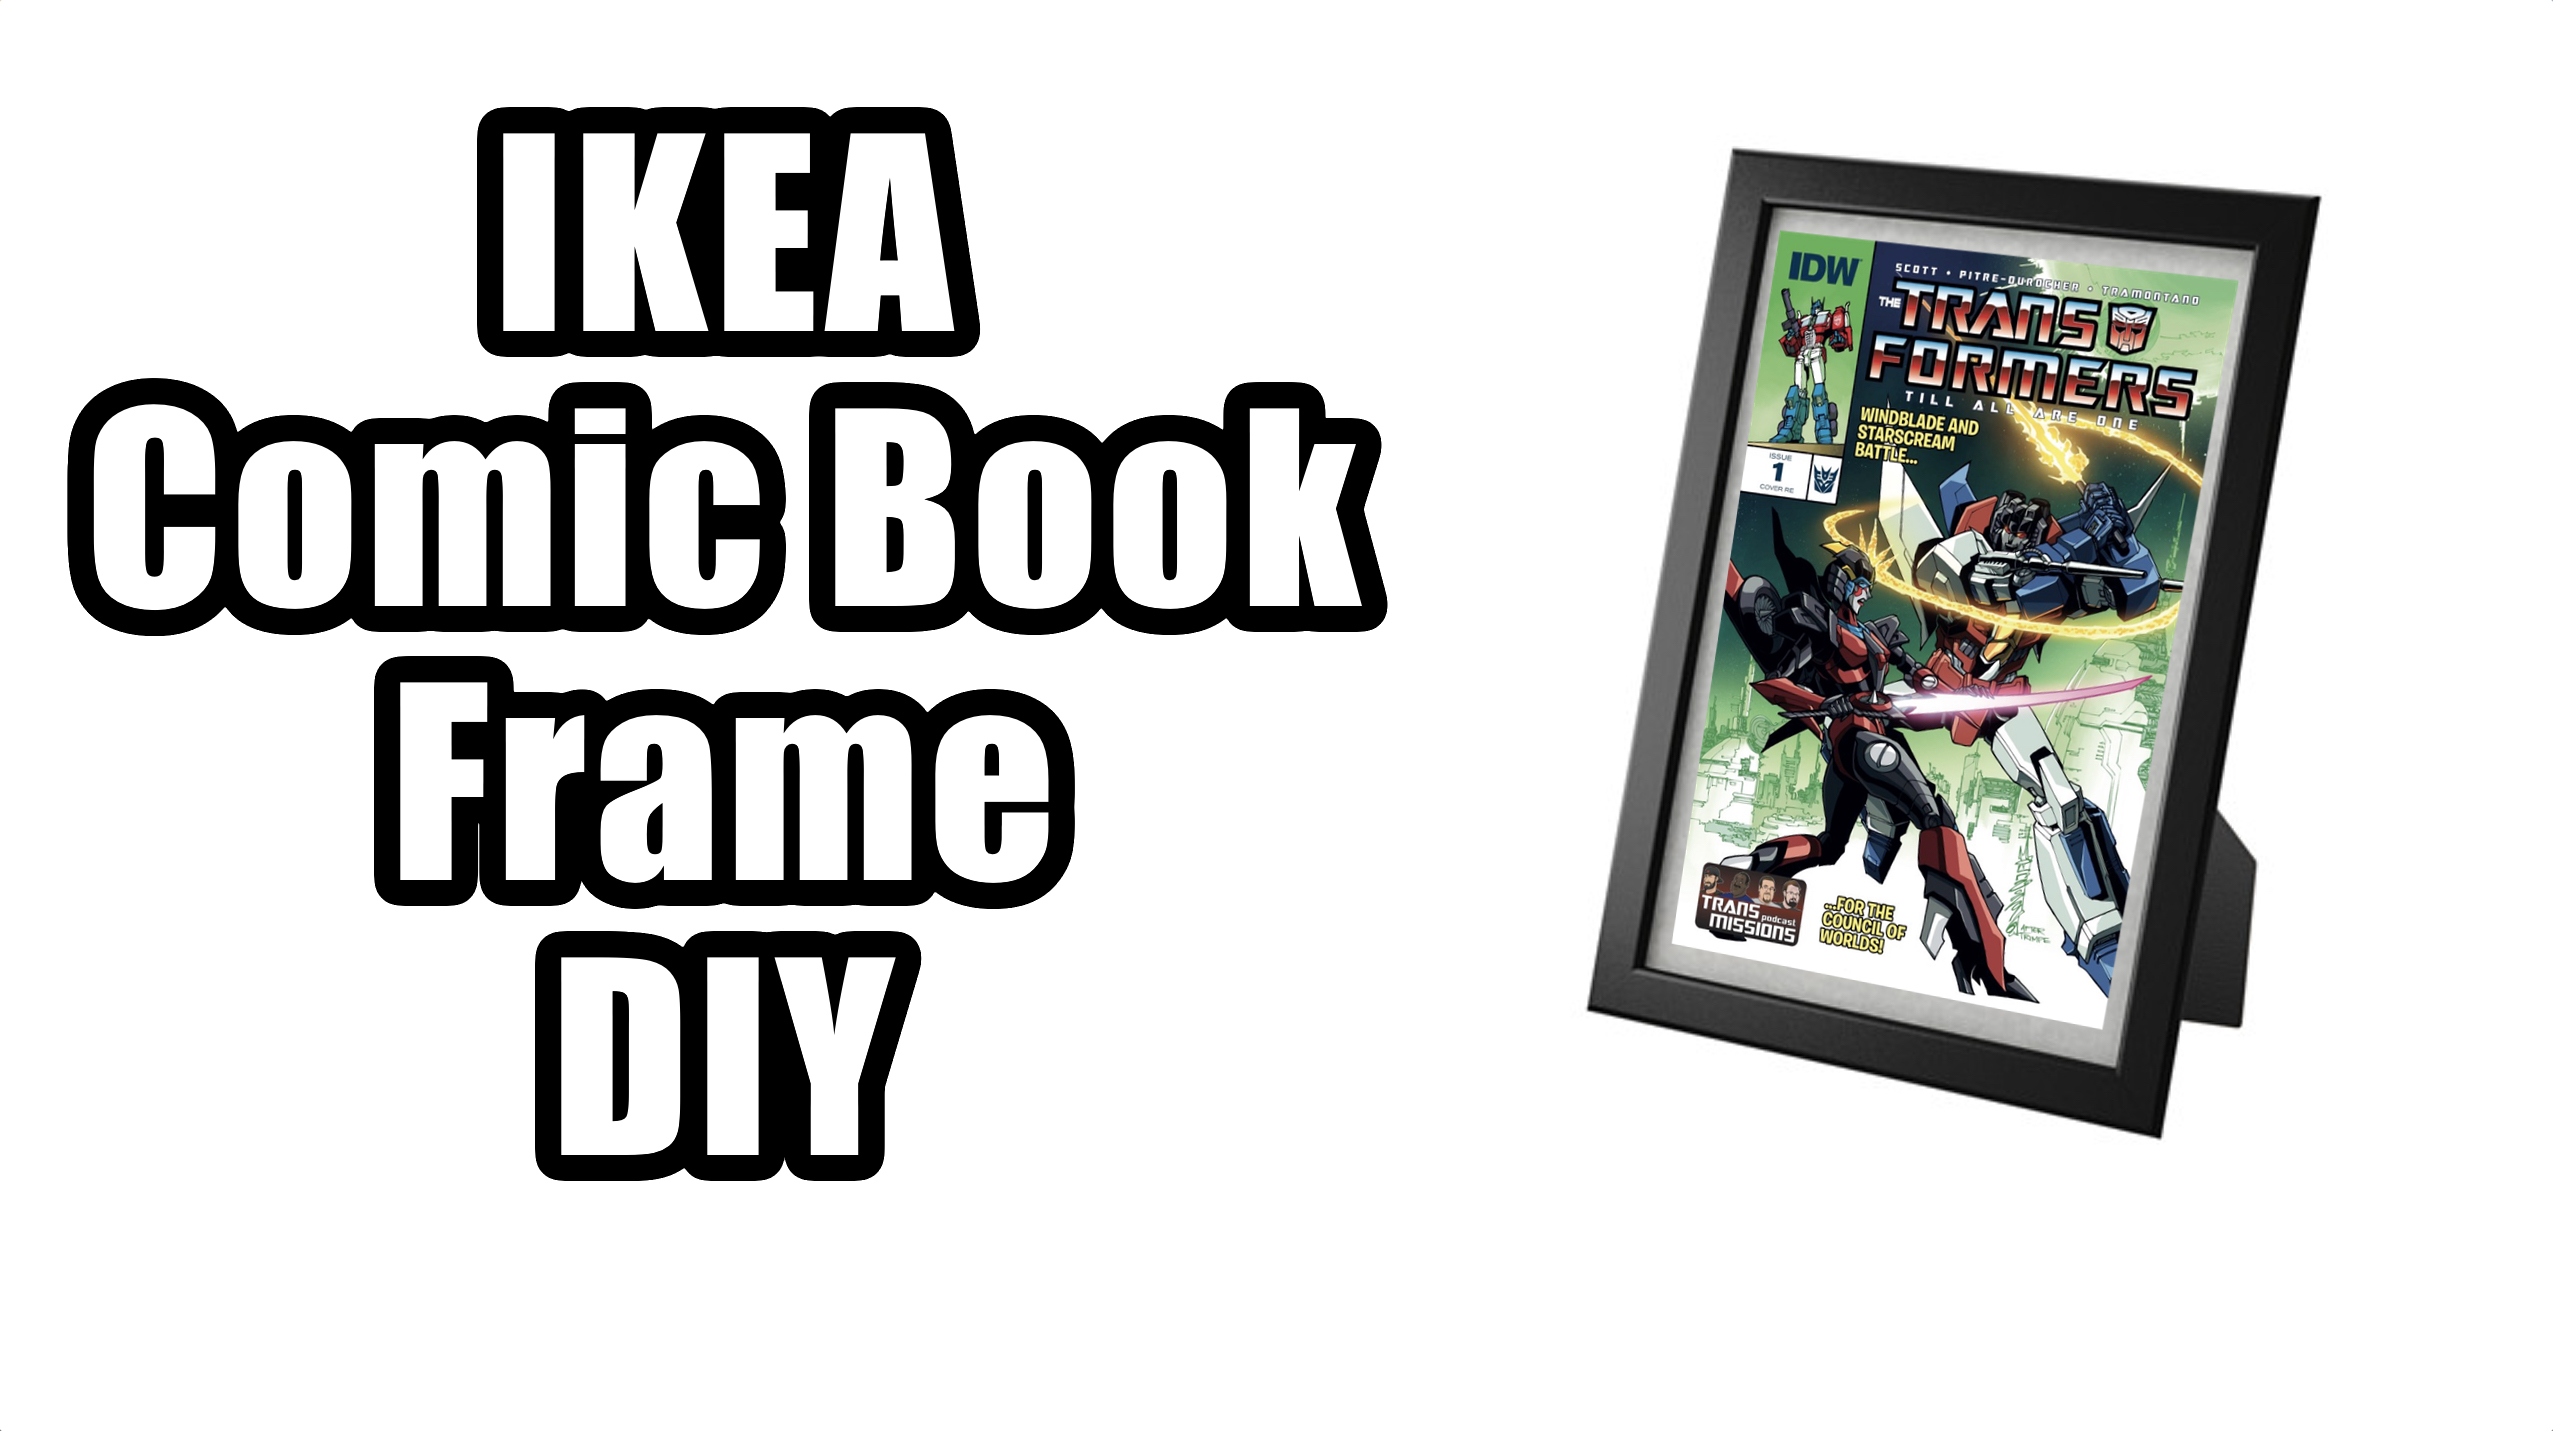 IKEA Comic Book Frame DIY Guide